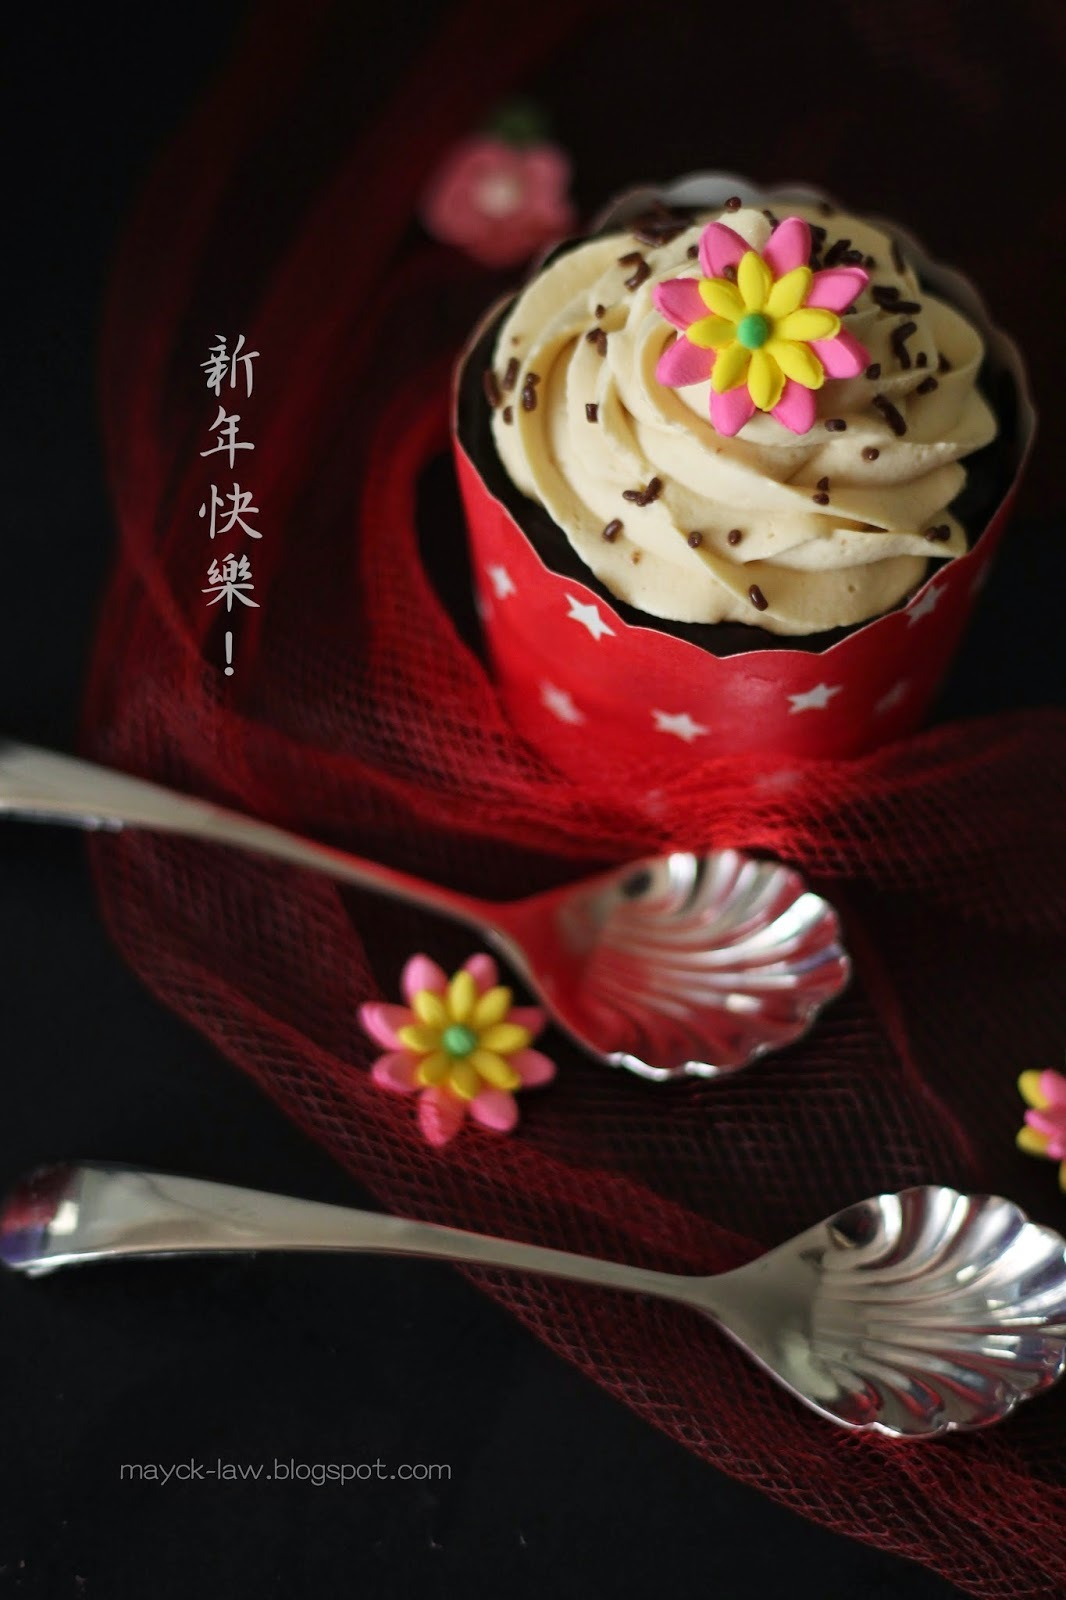 巧克力杯子蛋糕~咖啡乳酪奶油霜 (Chocolate Cupcake with Coffee and Cream Cheese Frosting)